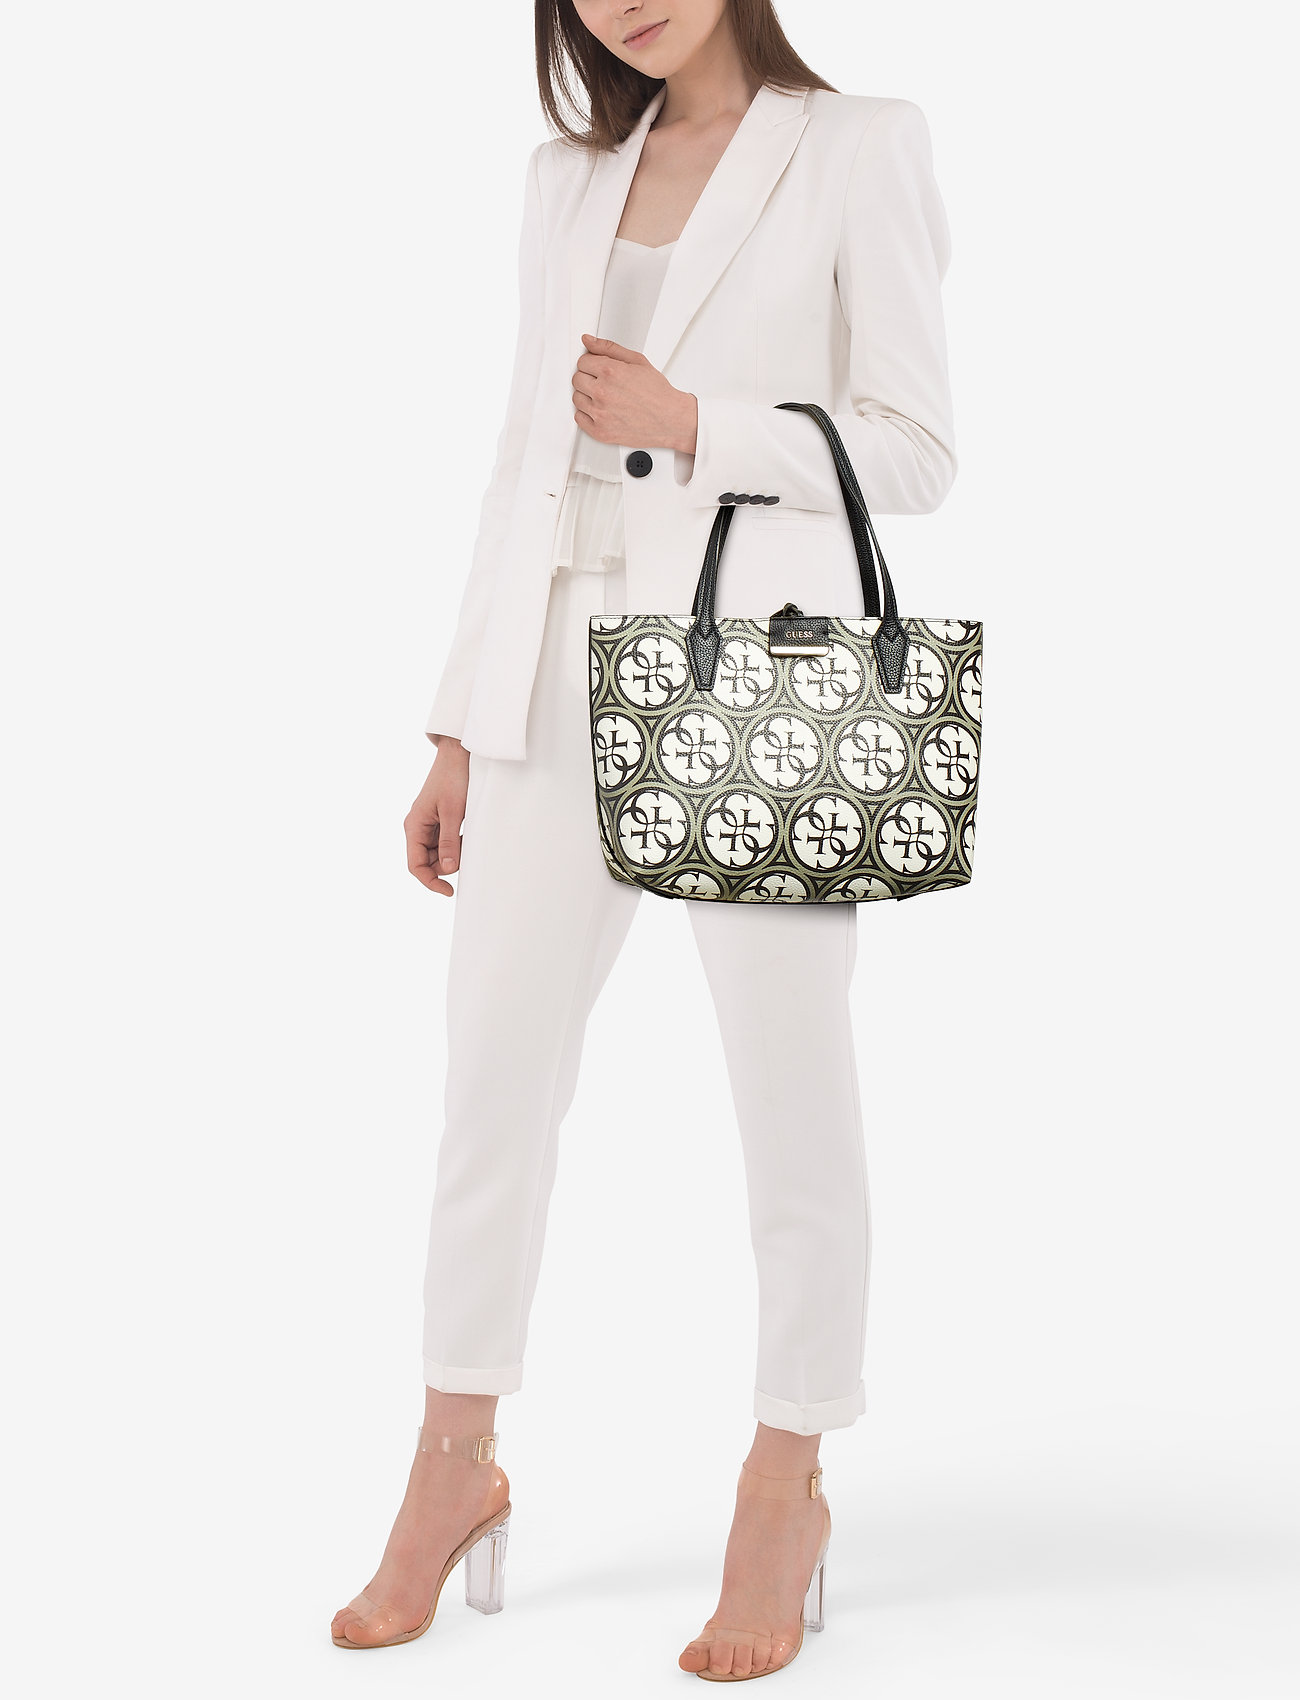 GUESS BOBBI INSIDE OUT TOTE - LOGO/PEWTER